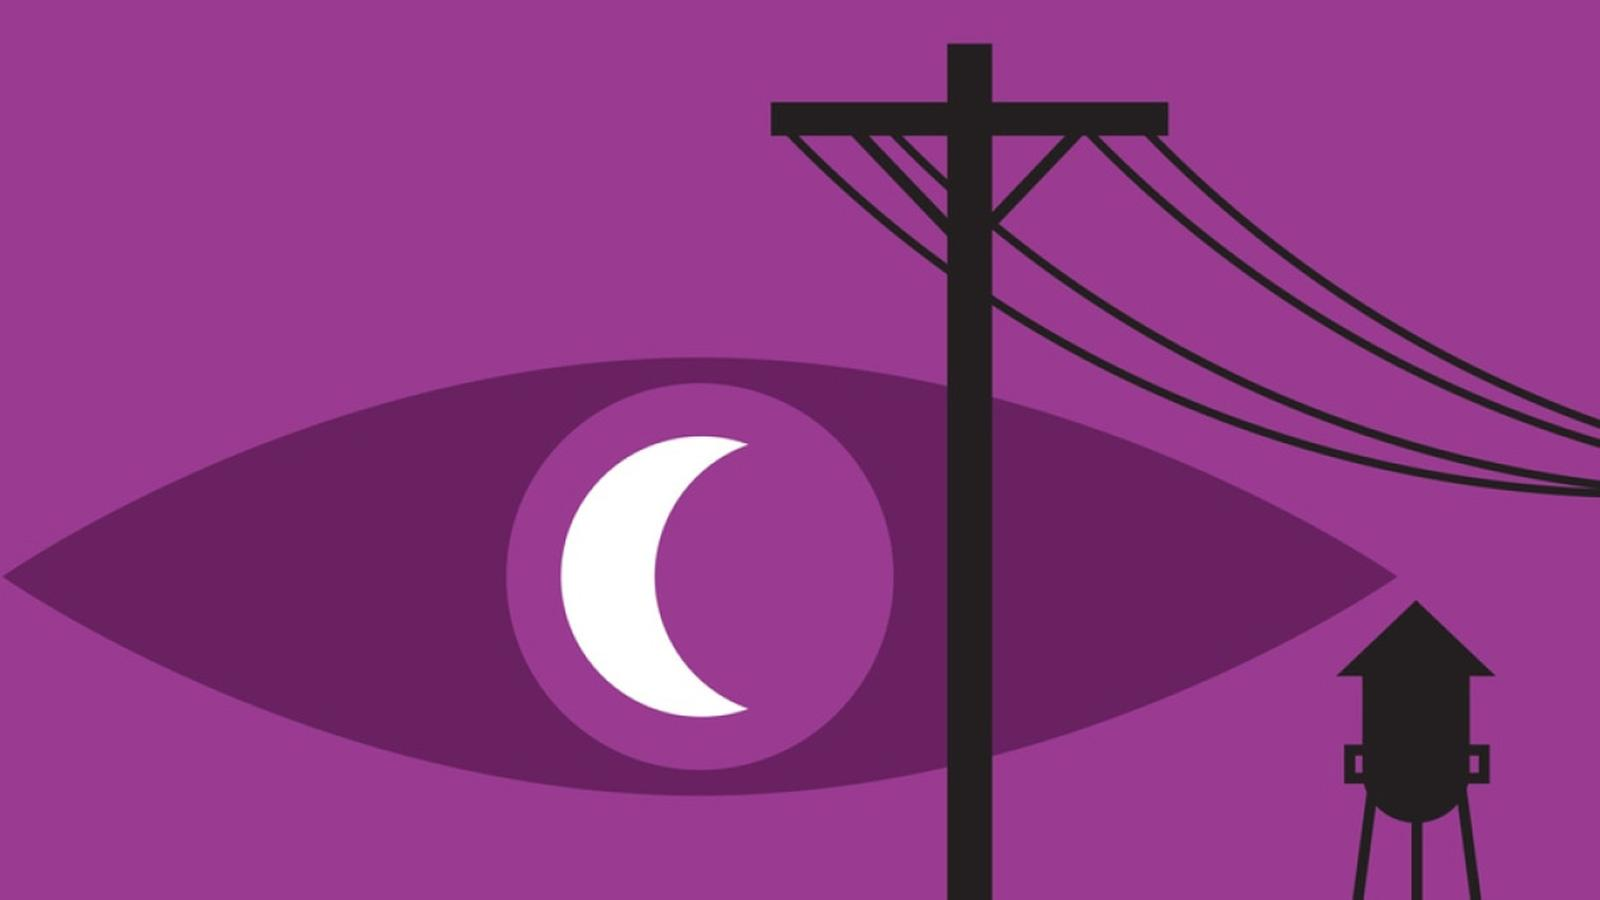 Fx Will Turn Podcast Hit Welcome To Night Vale Into A Tv Show Engadget